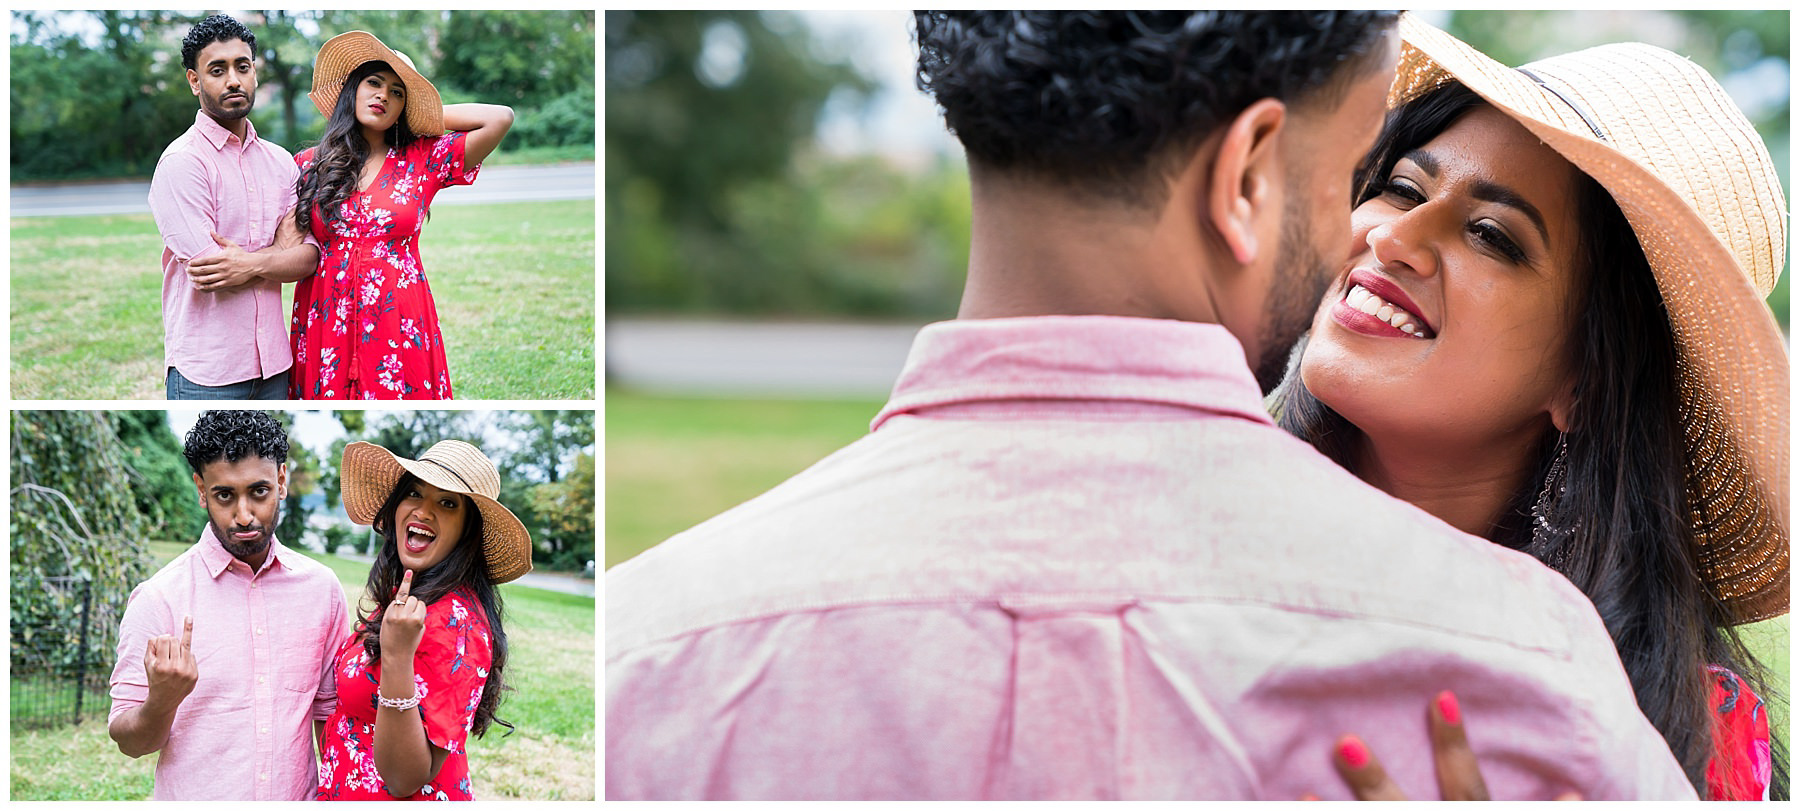 fort-tysons-park-new-york-engagement-shoot-sibyl-jithin-16.jpg